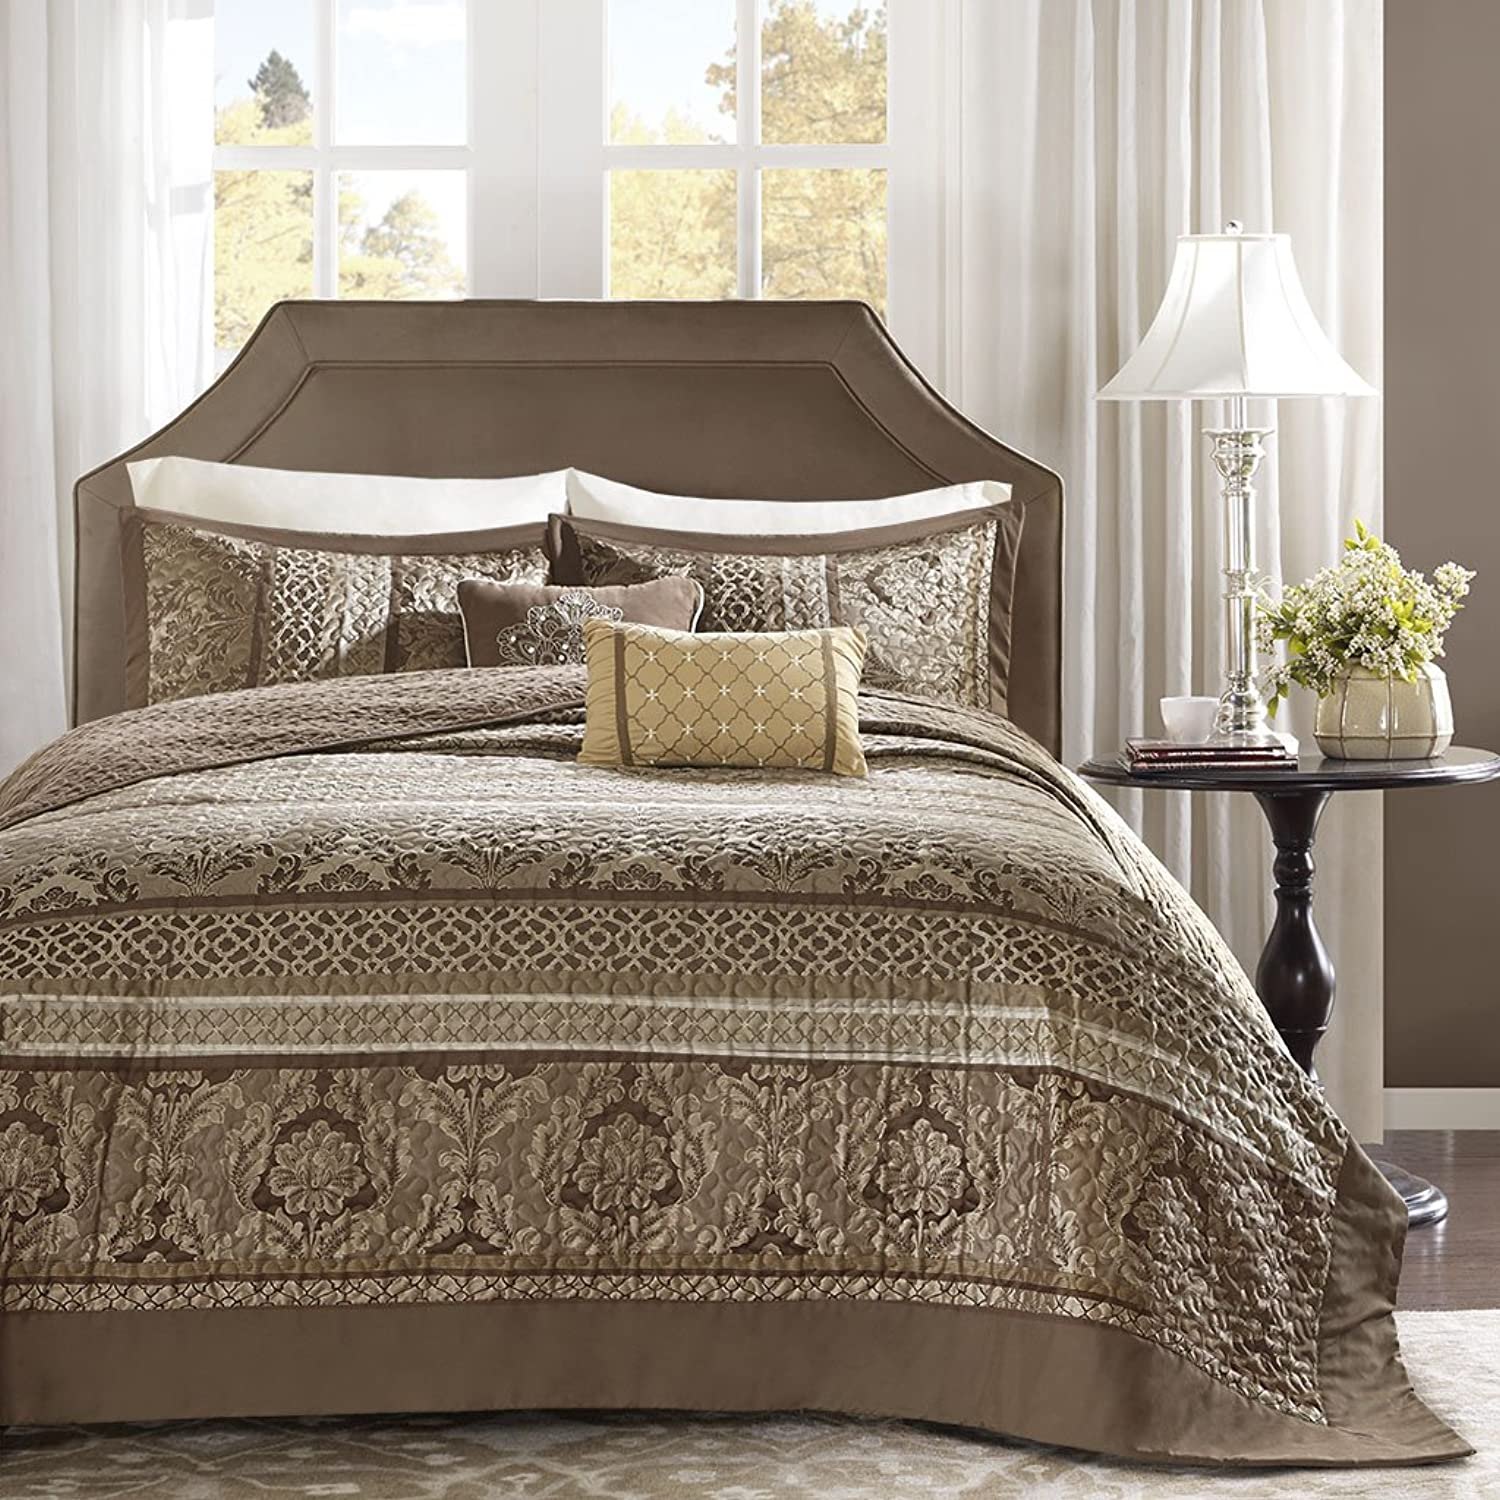 Madison Park Striped Bedspread Set, Oversize Queen, Brown gold